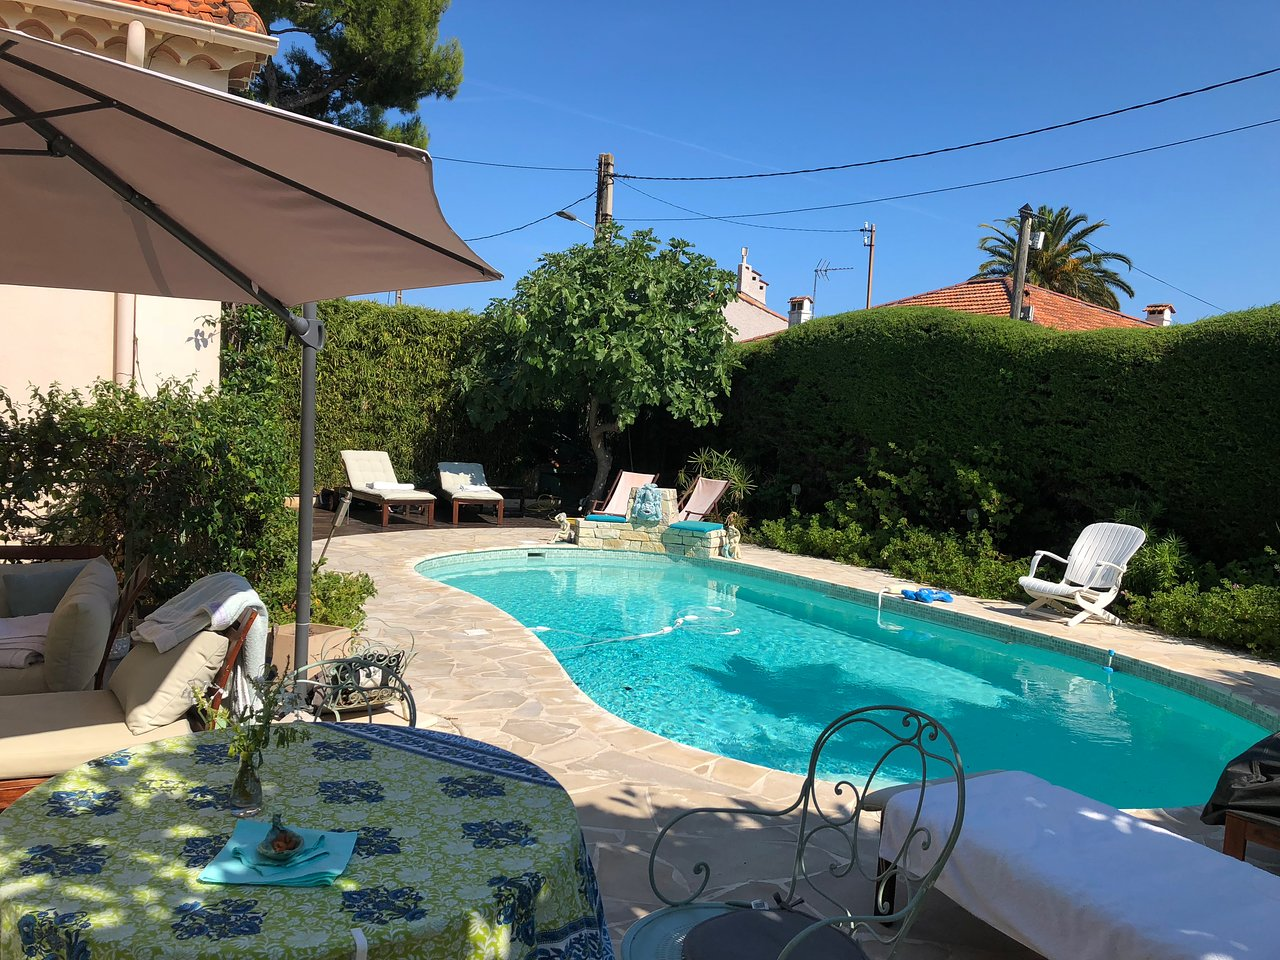 Chambres Dhotes.org Chambres D Hotes Blue Dream Guest House Reviews Cannes France